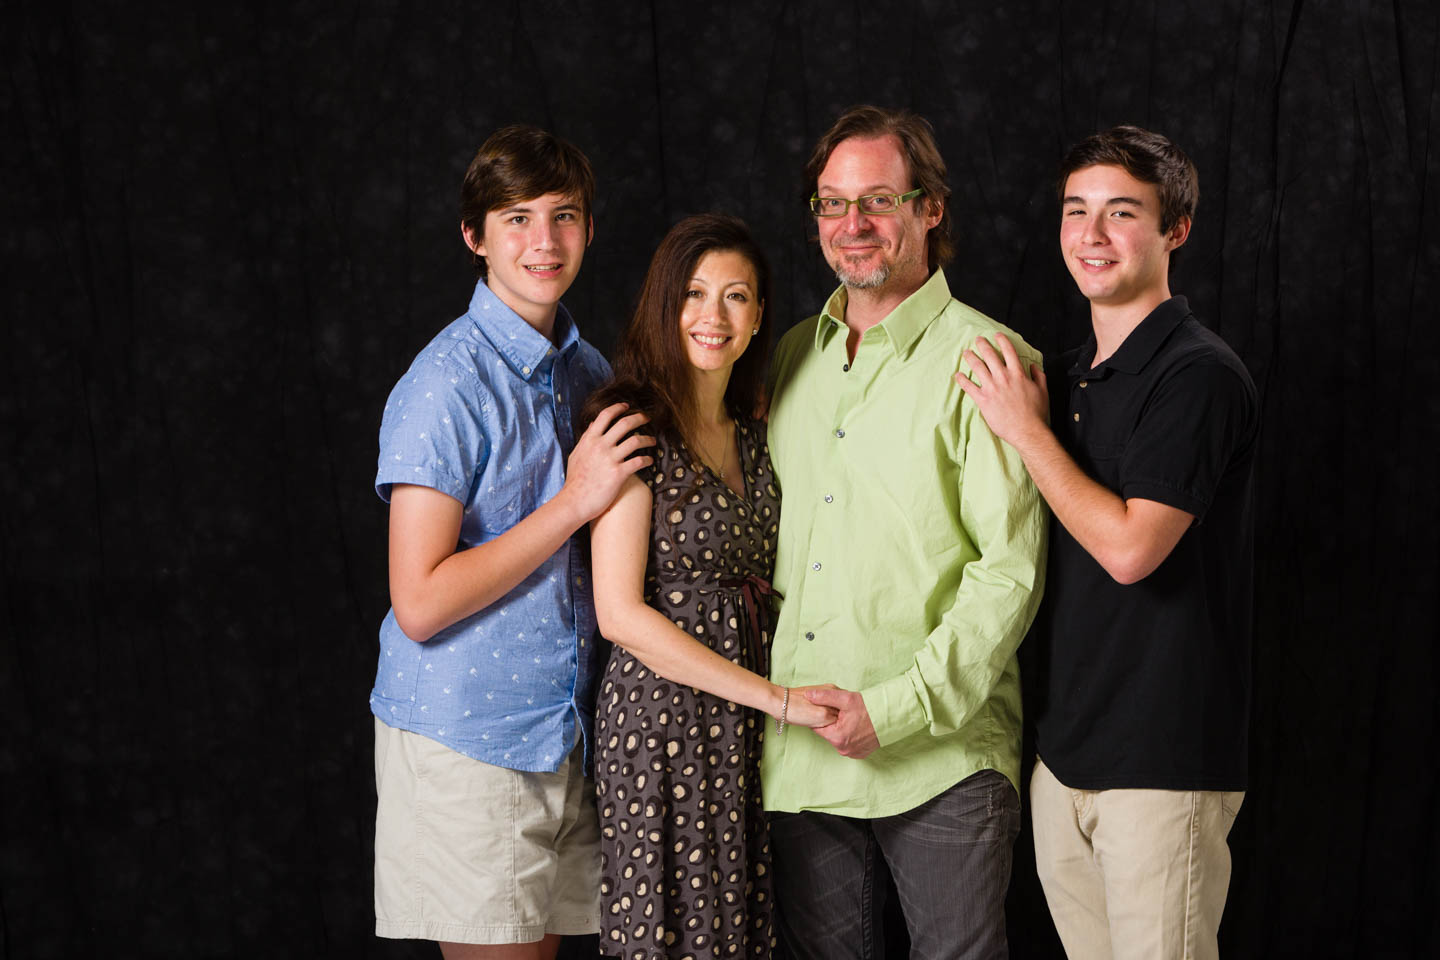 Family portrait in studio with black background